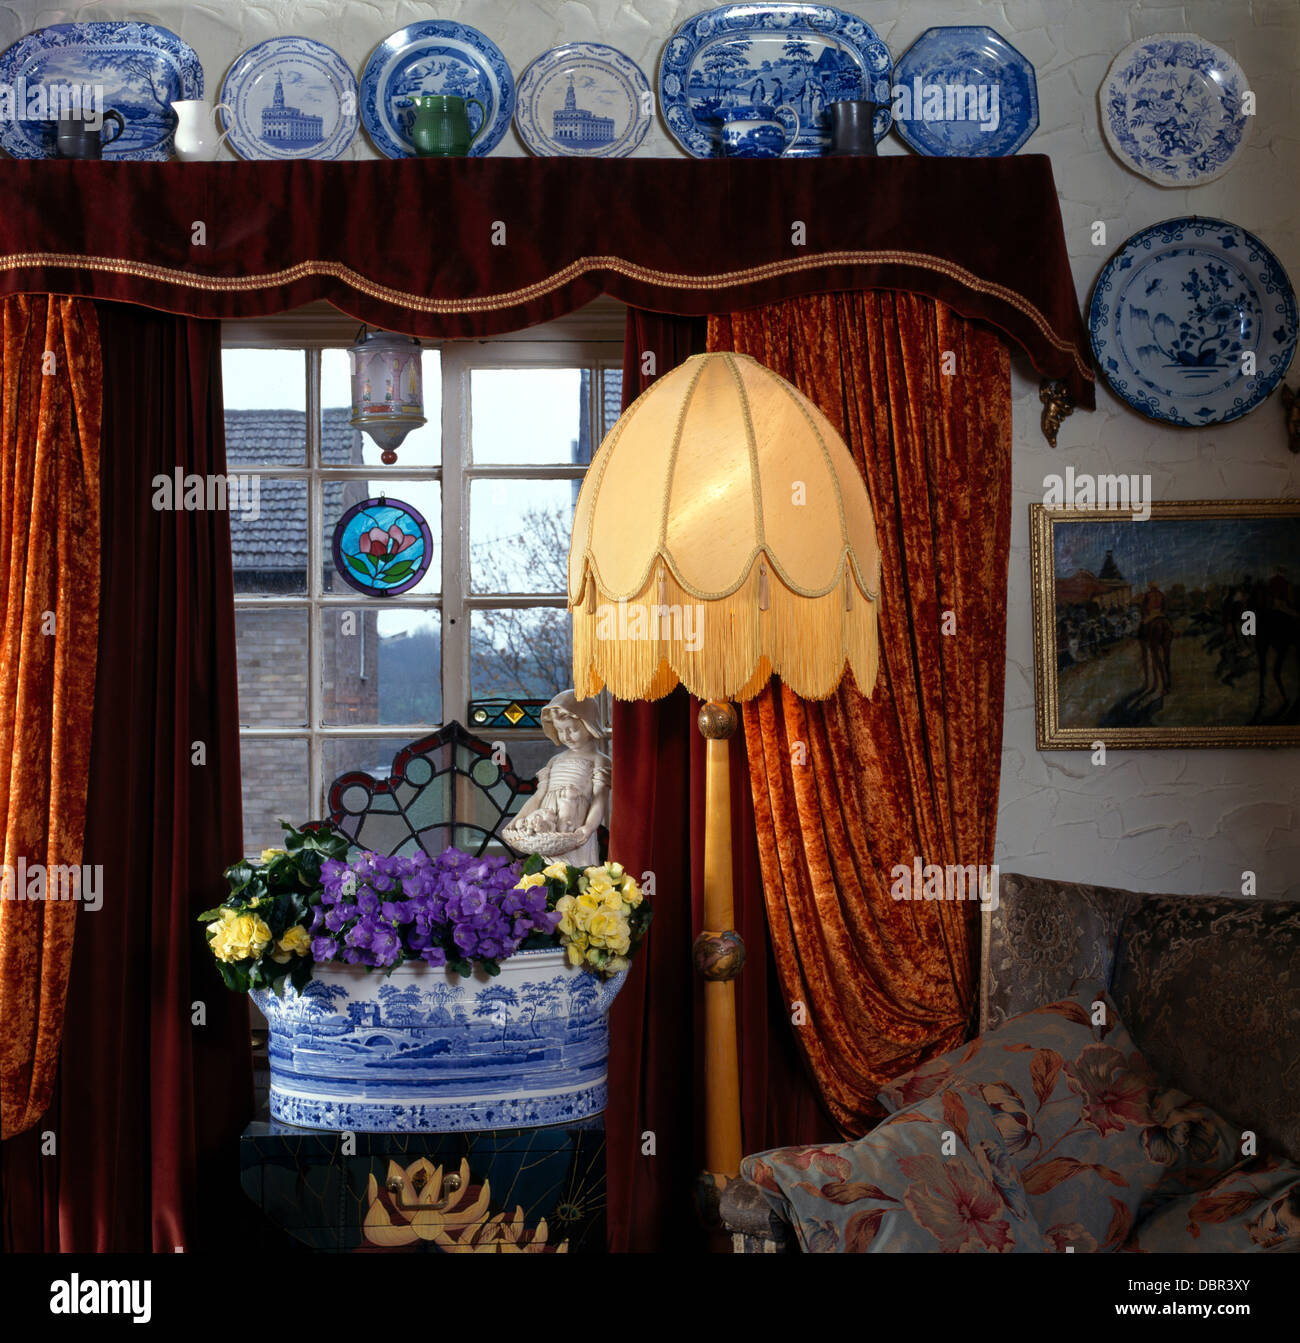 Blue White China On Wall Above Window With Red Brown Velvet Curtains Stock Photo Alamy